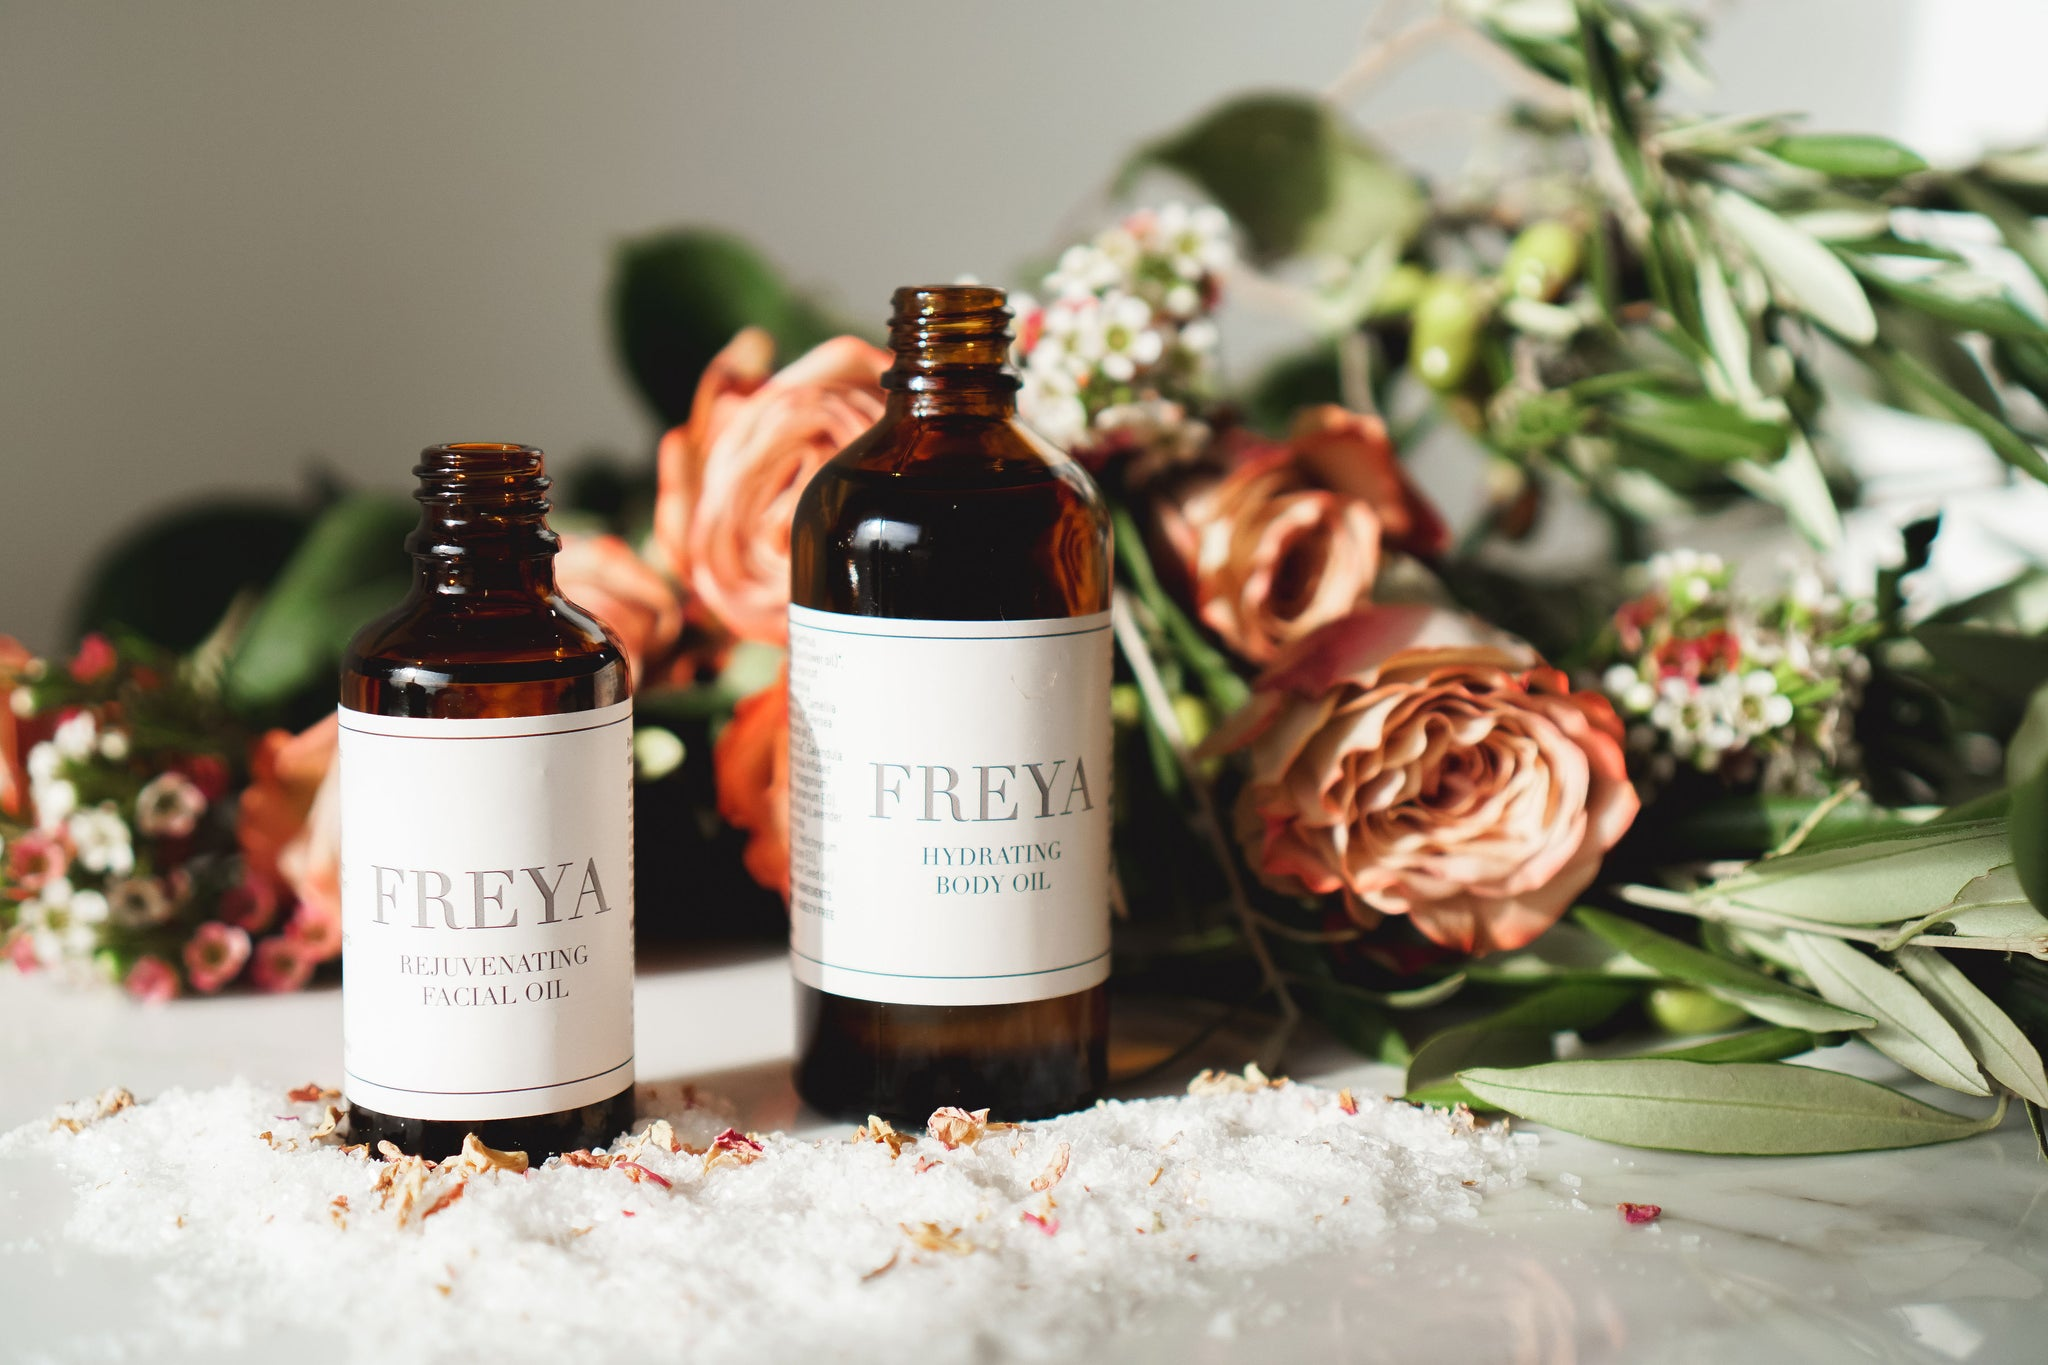 Rejuvenating Facial Oil - Freya's Nourishment